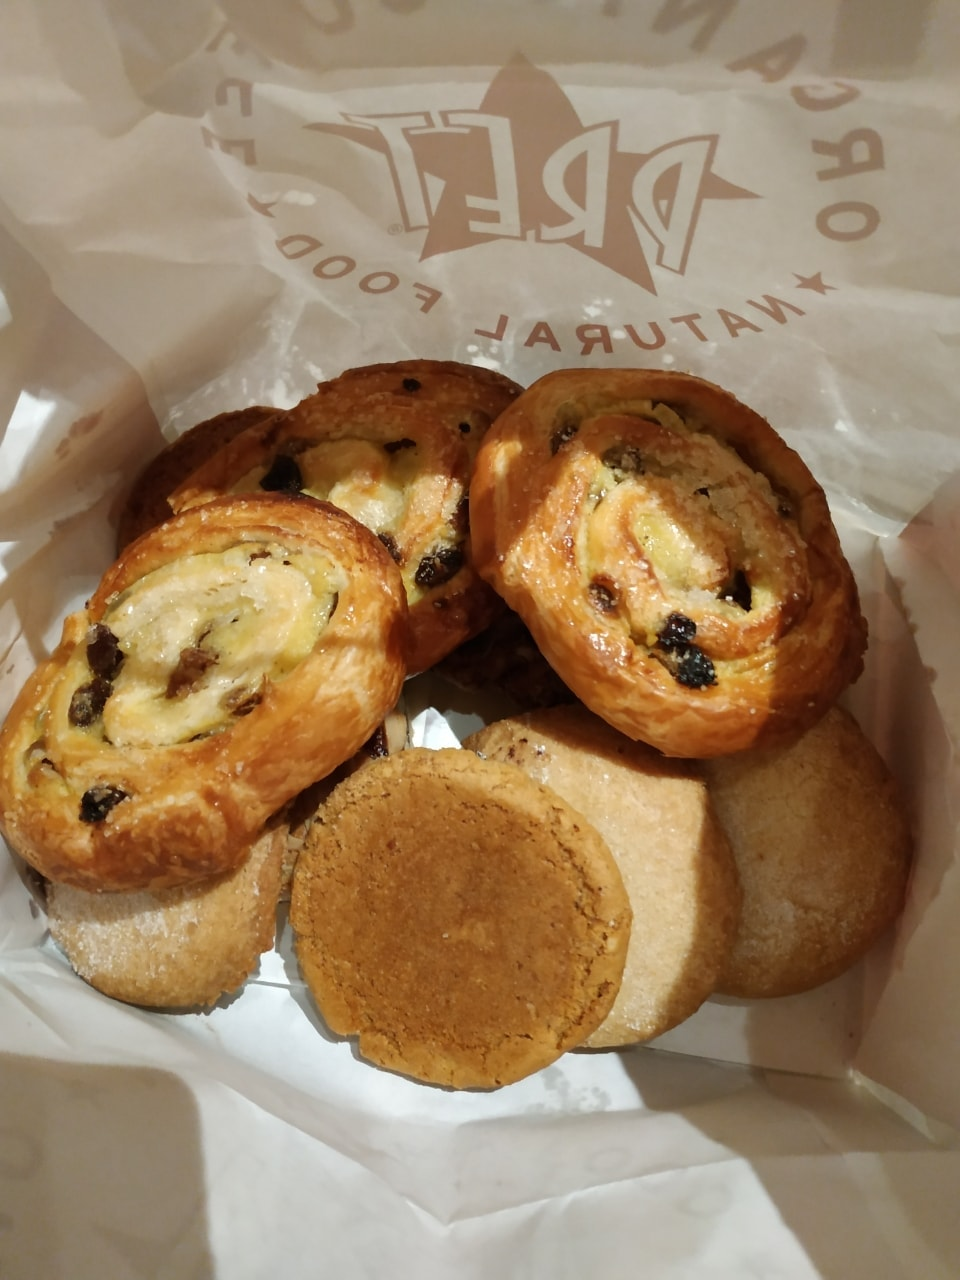 Bakery items from Pret